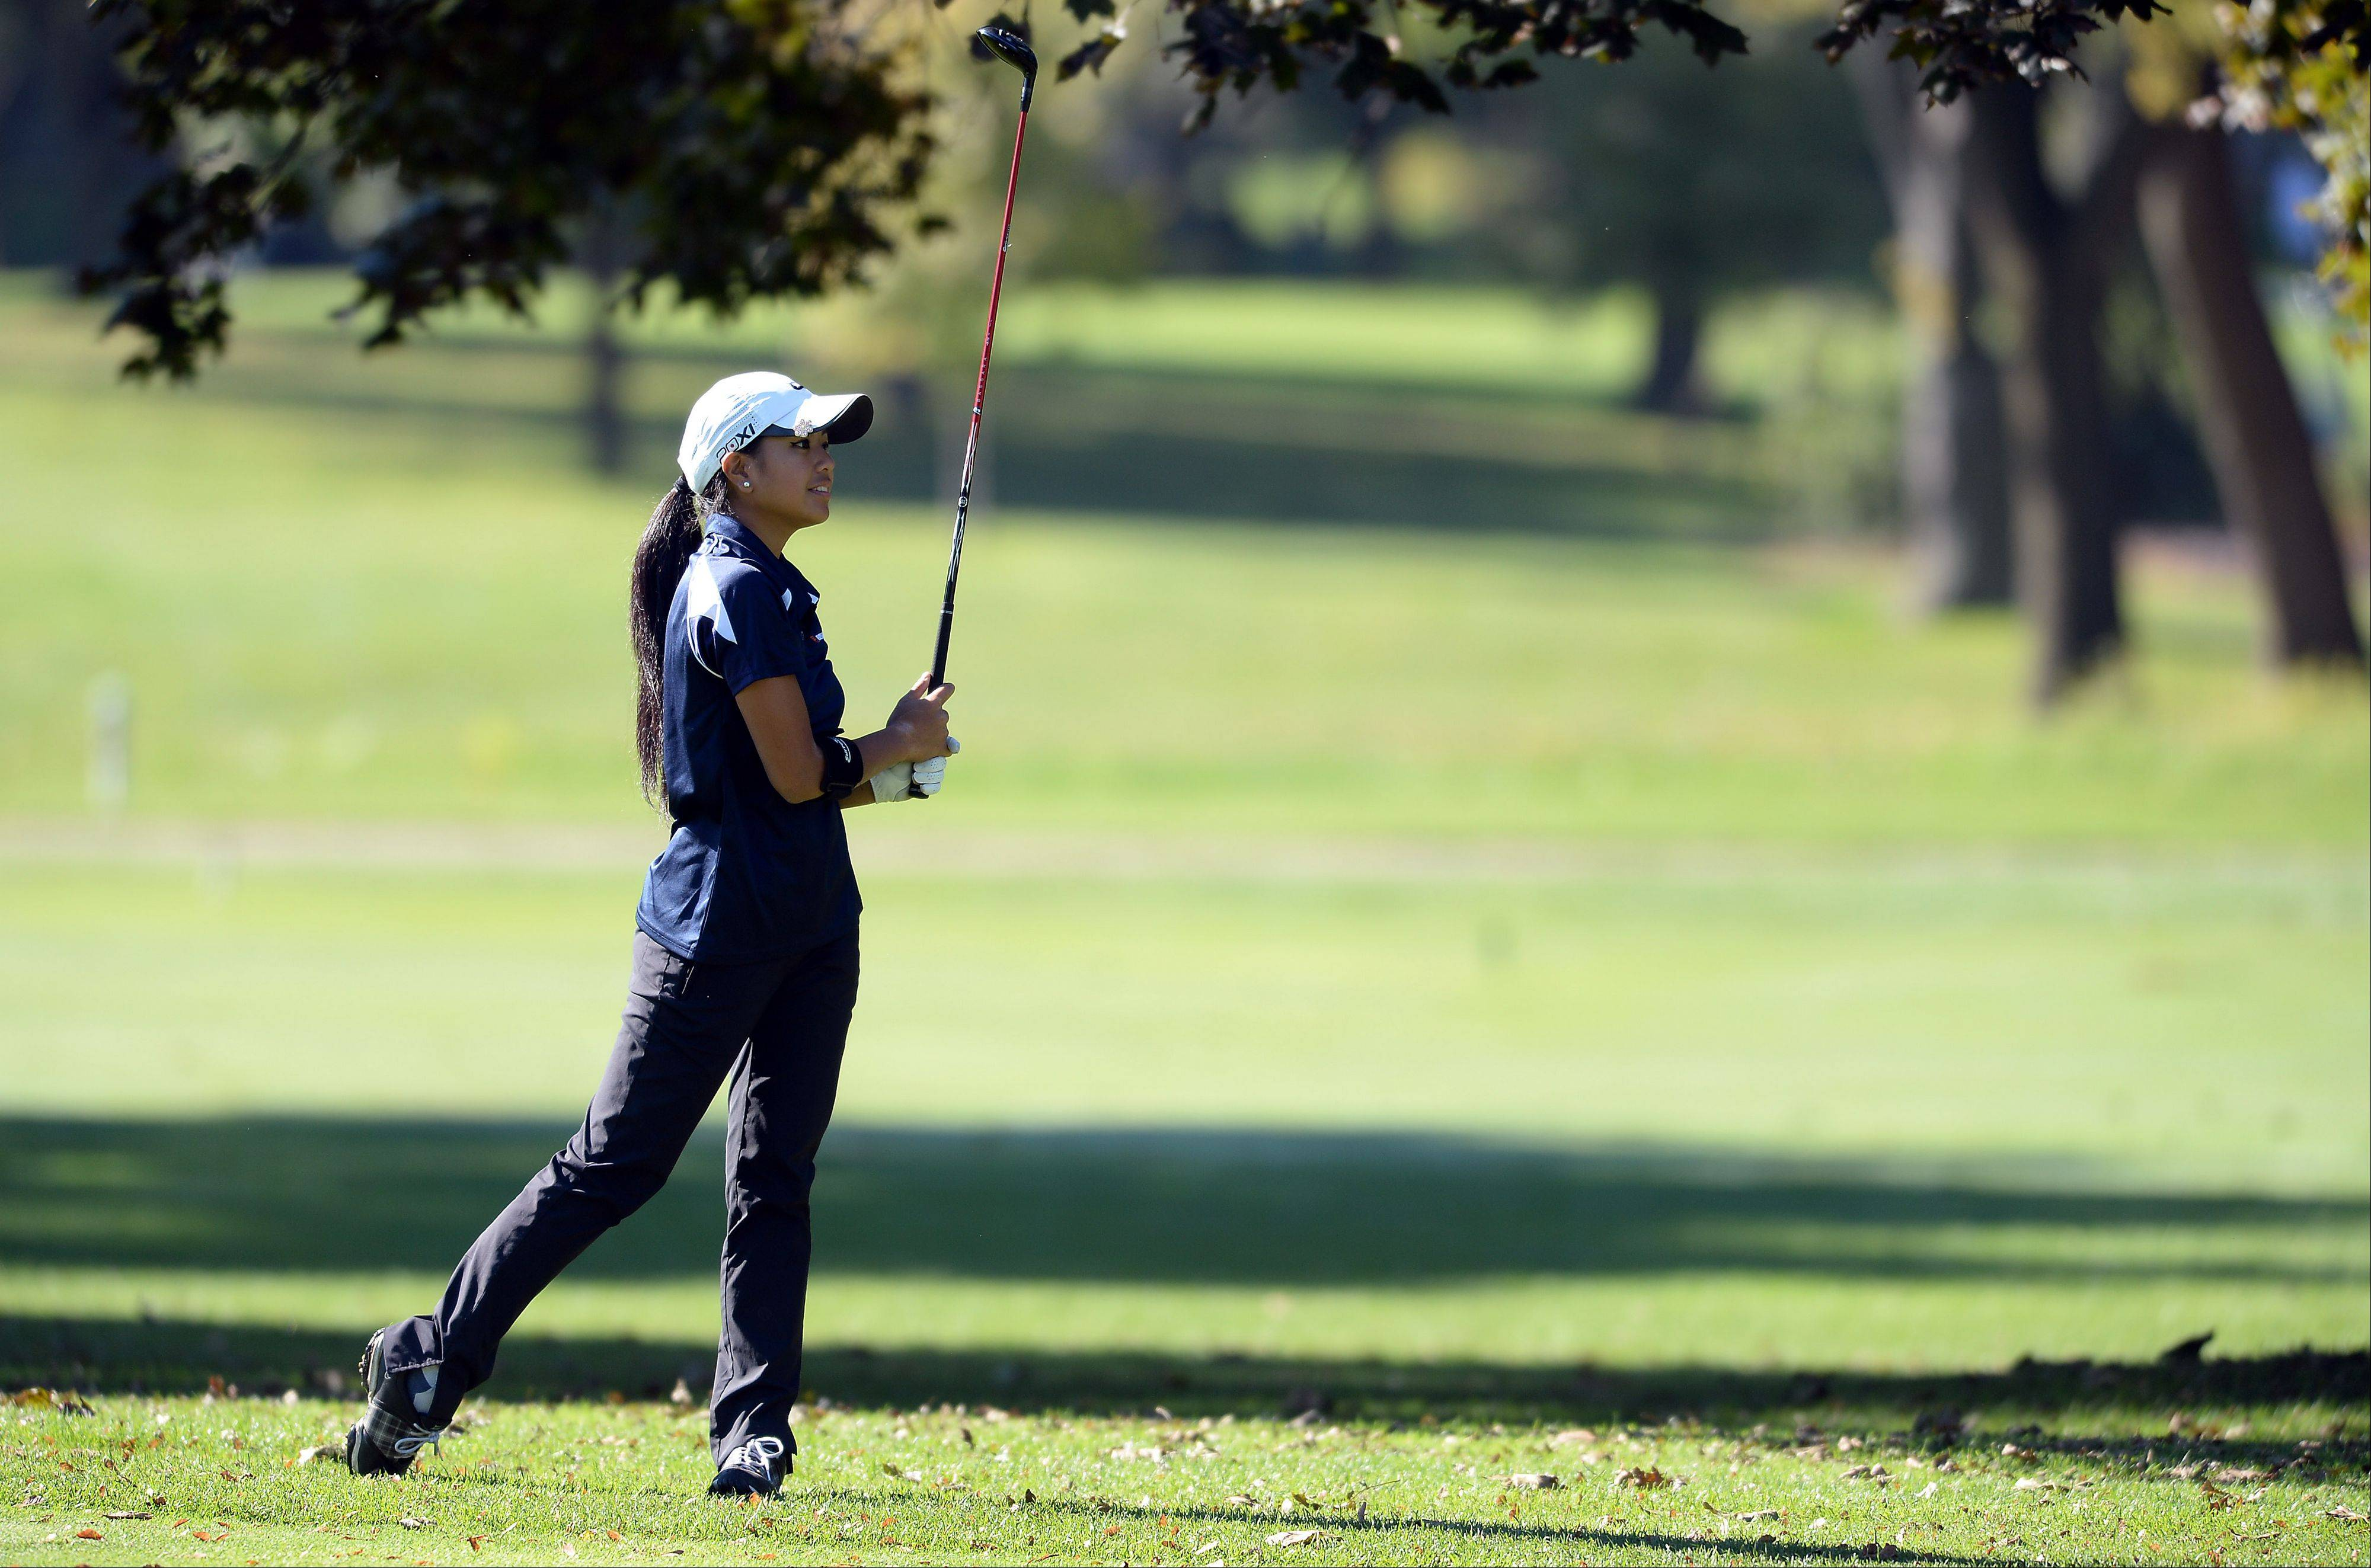 Amber Guiao of Buffalo Grove High School smiles as she drives her ball down the fairway on the first hole in the girls golf regional at Mt. Prospect Golf Club on Wednesday.